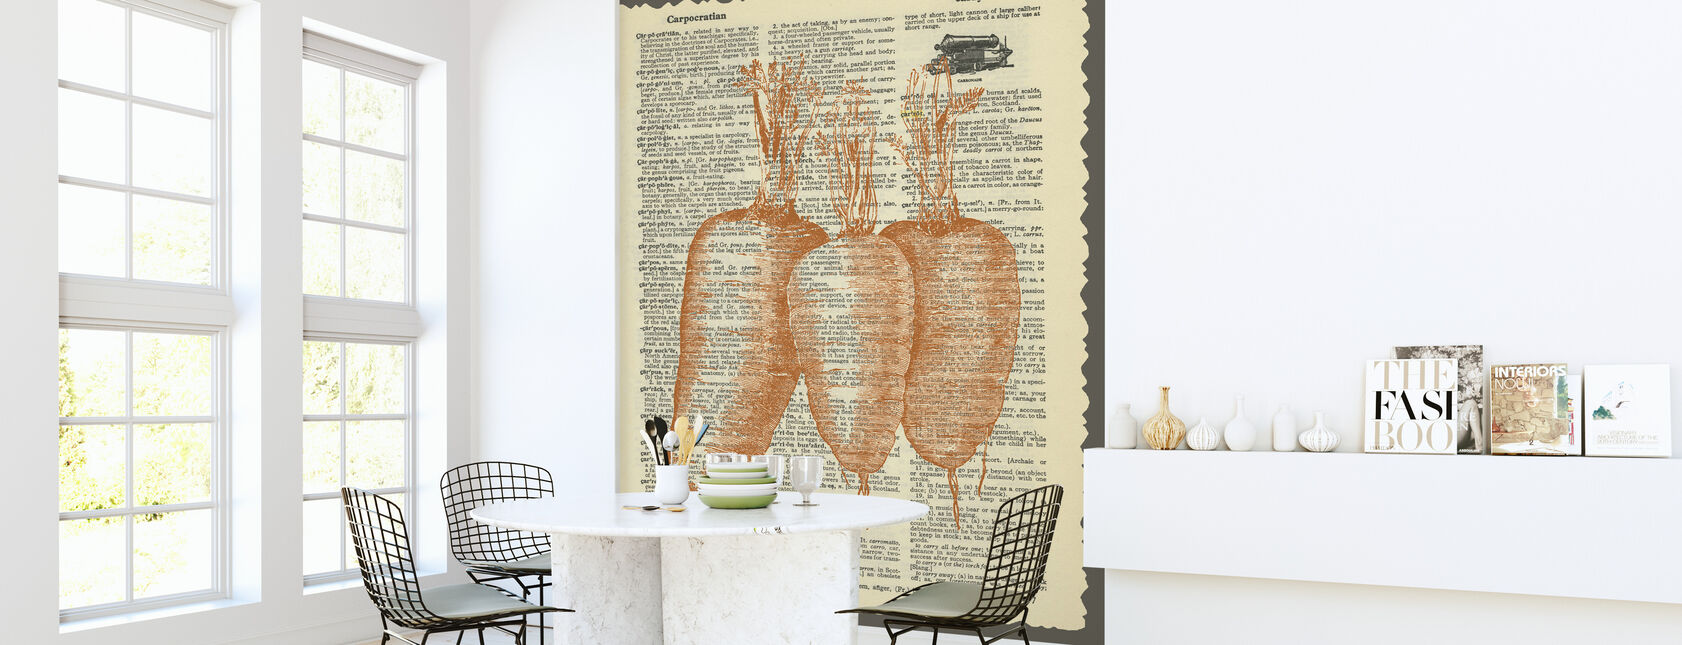 Carrots and Text - Wallpaper - Kitchen